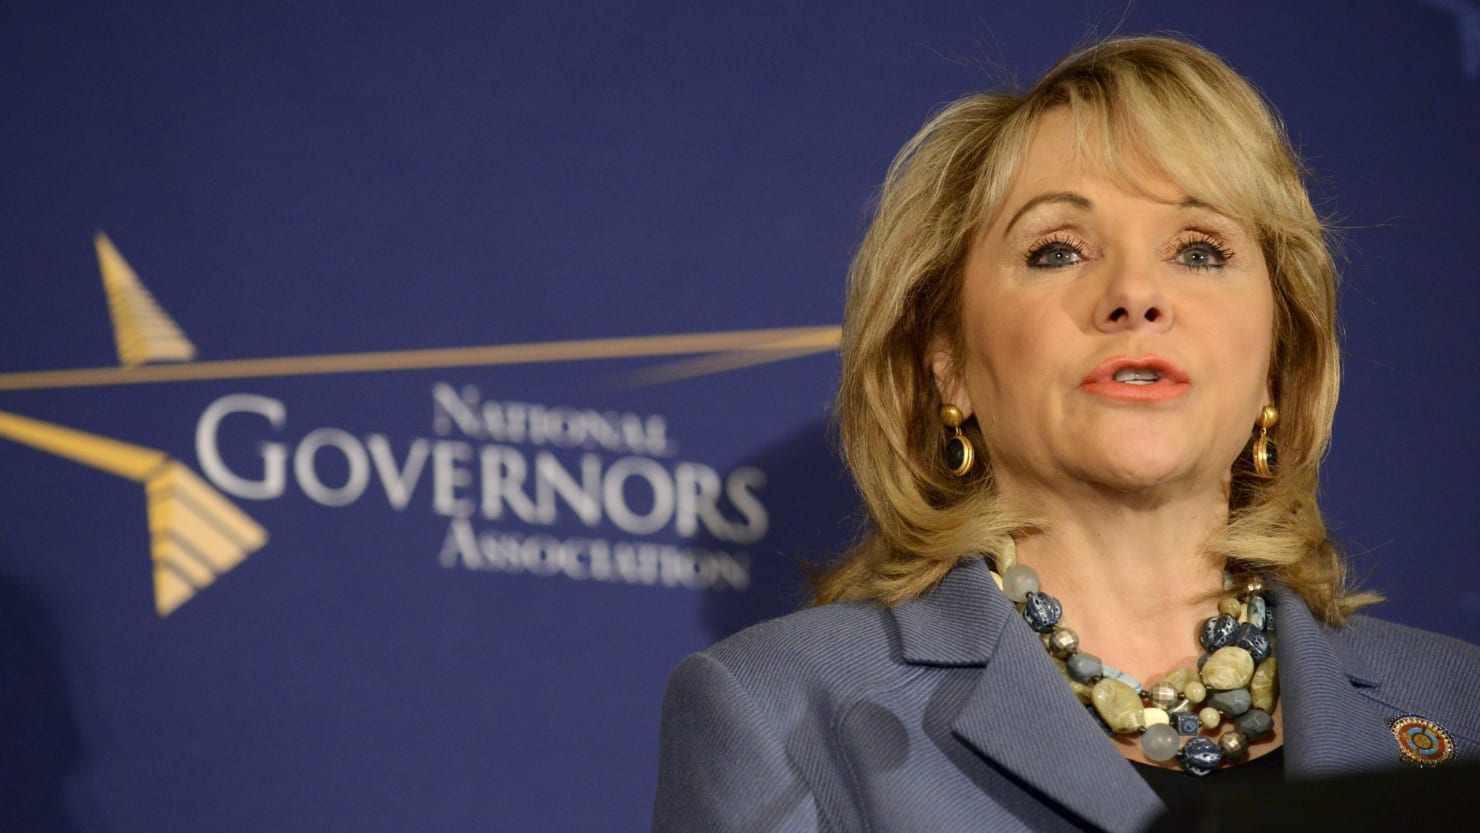 Anti-LGBT adoption law signed by Oklahoma Governor